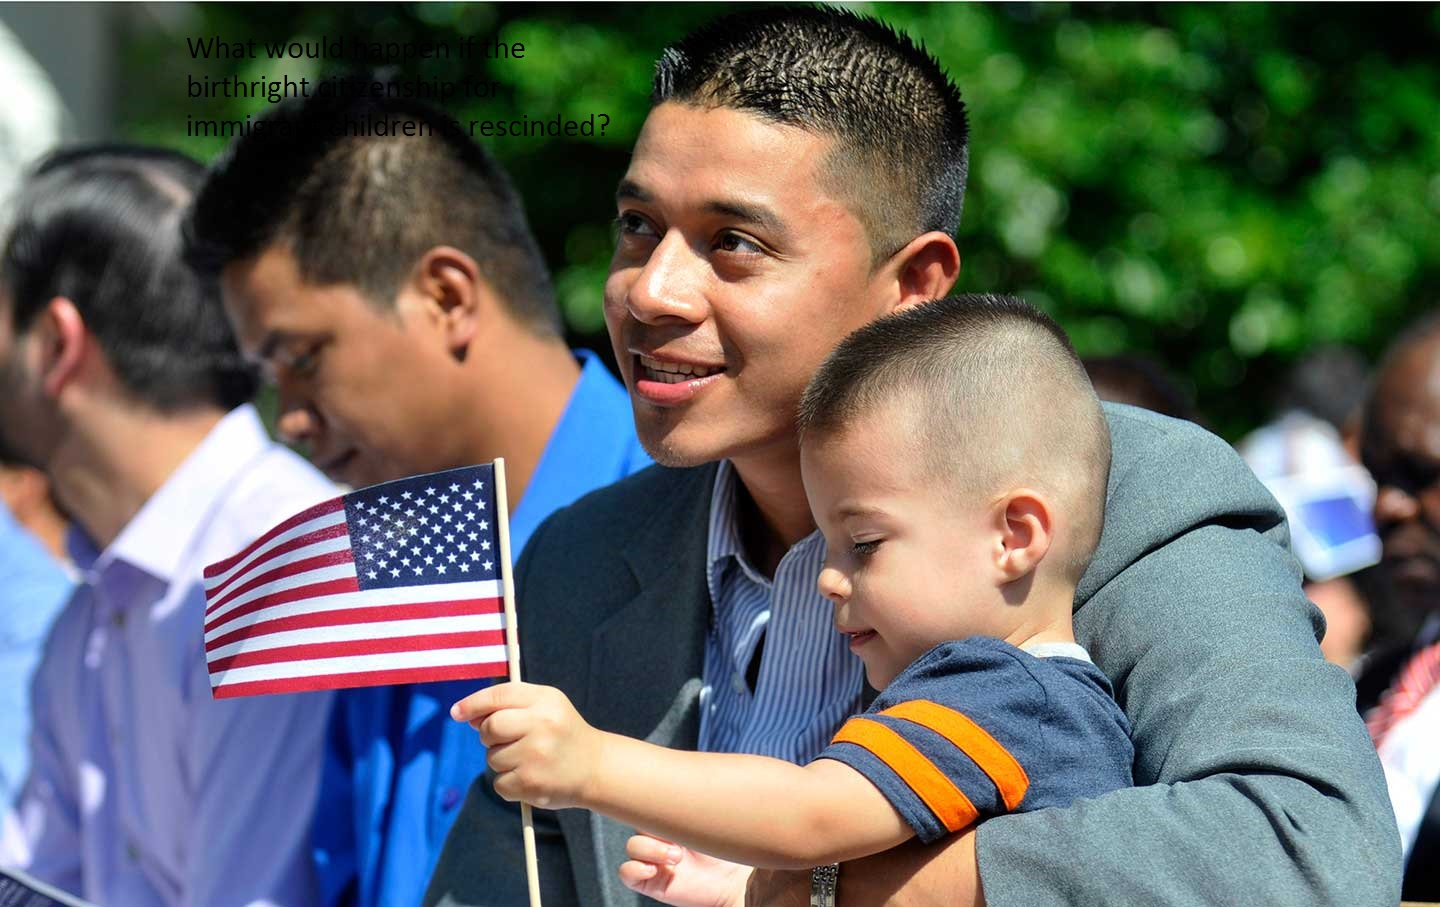 What would happen if the birthright citizenship for immigrant children is rescinded?